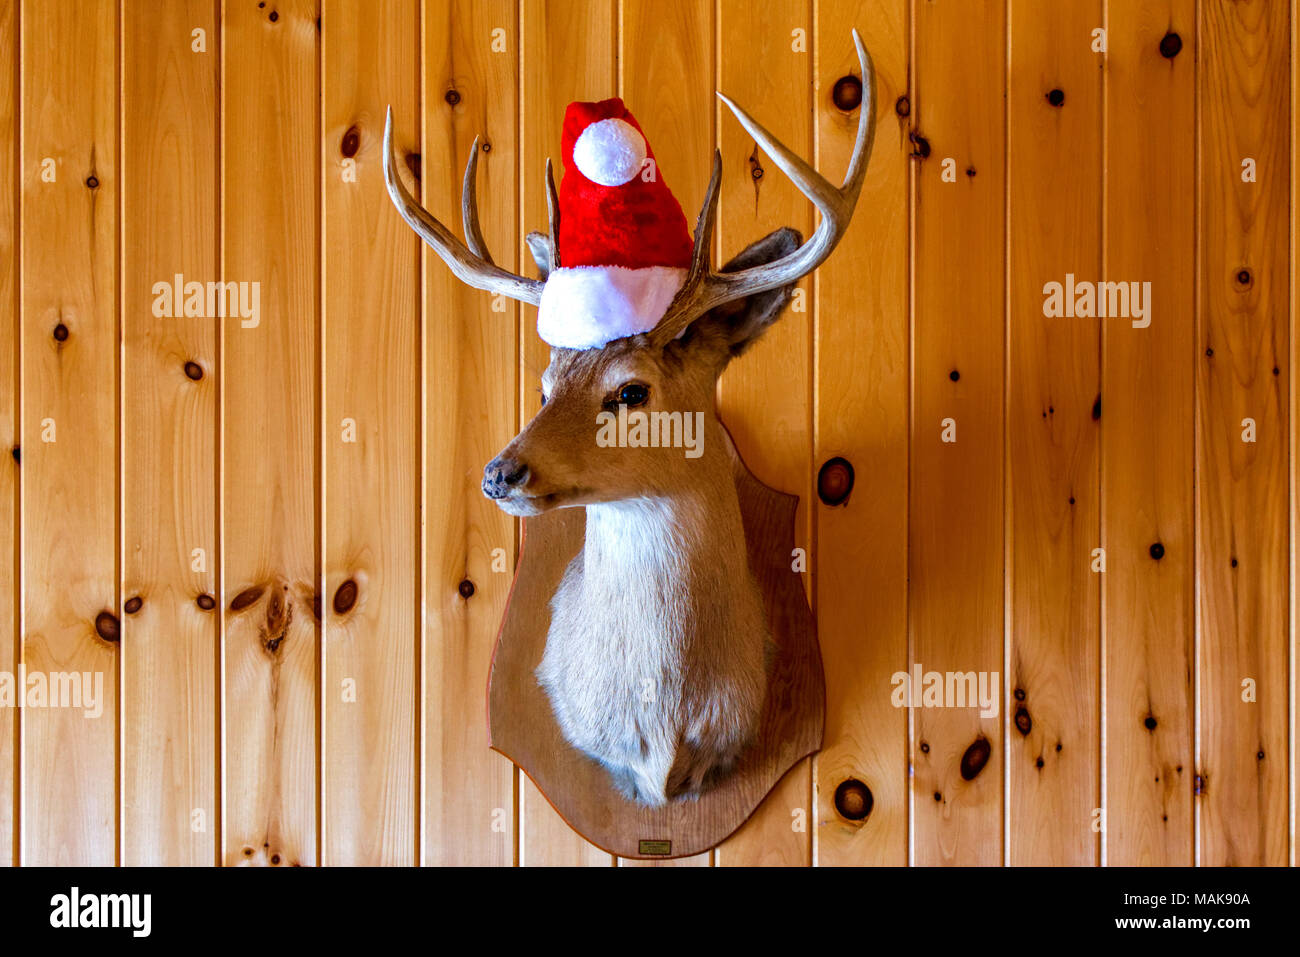 Funny deer with a Santa Claus hat - Stock Image